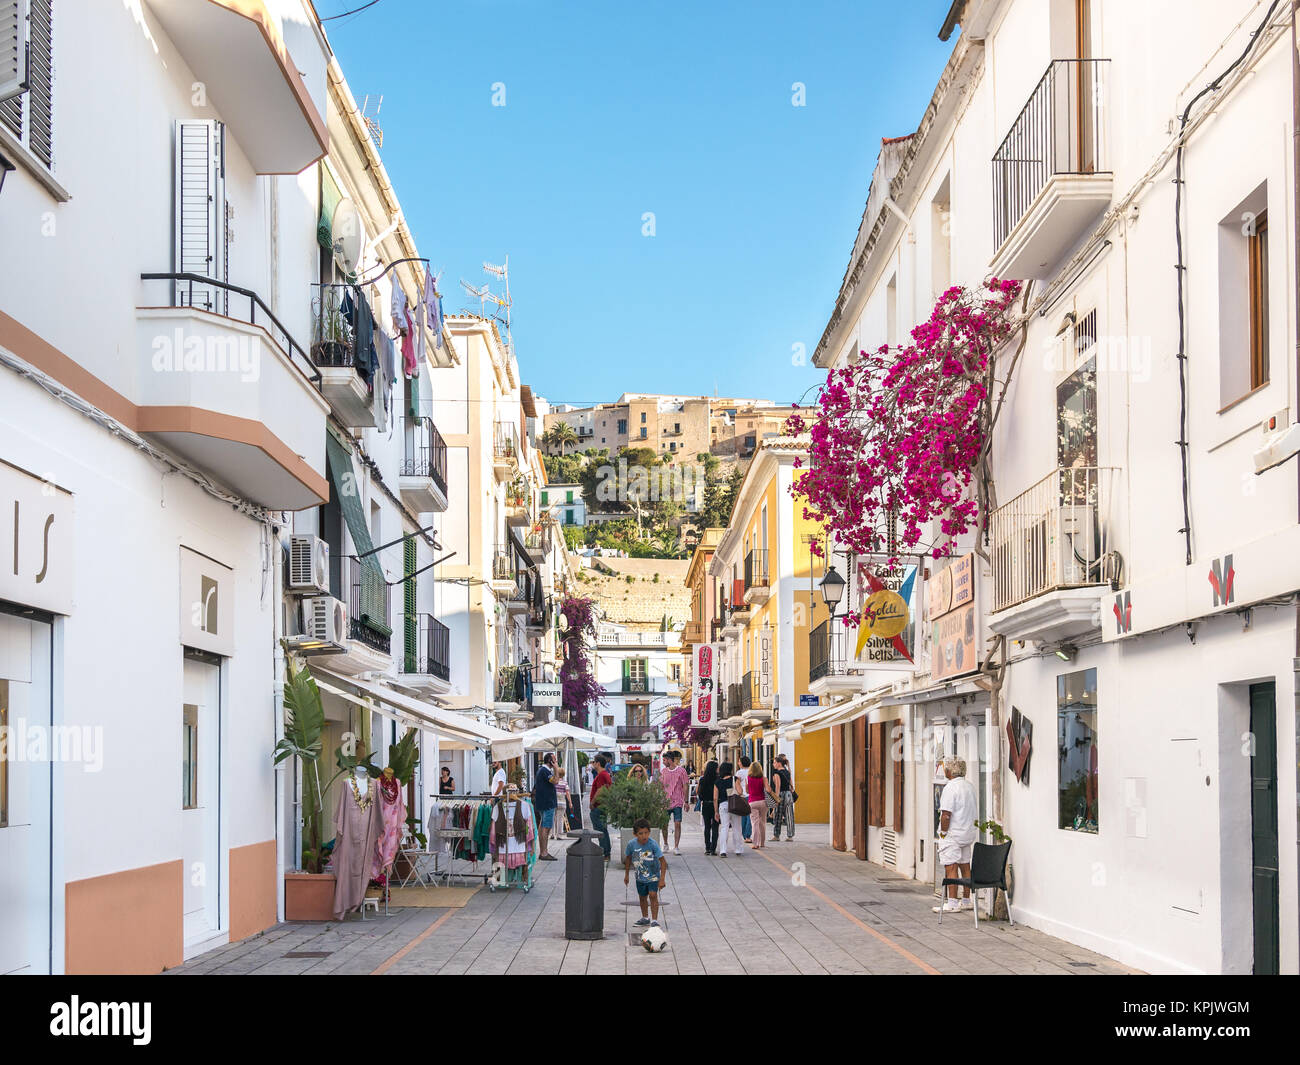 Ibiza, Spain - May 23, 2015. Little cozy and white streets in the center of the Ibiza old town. - Stock Image